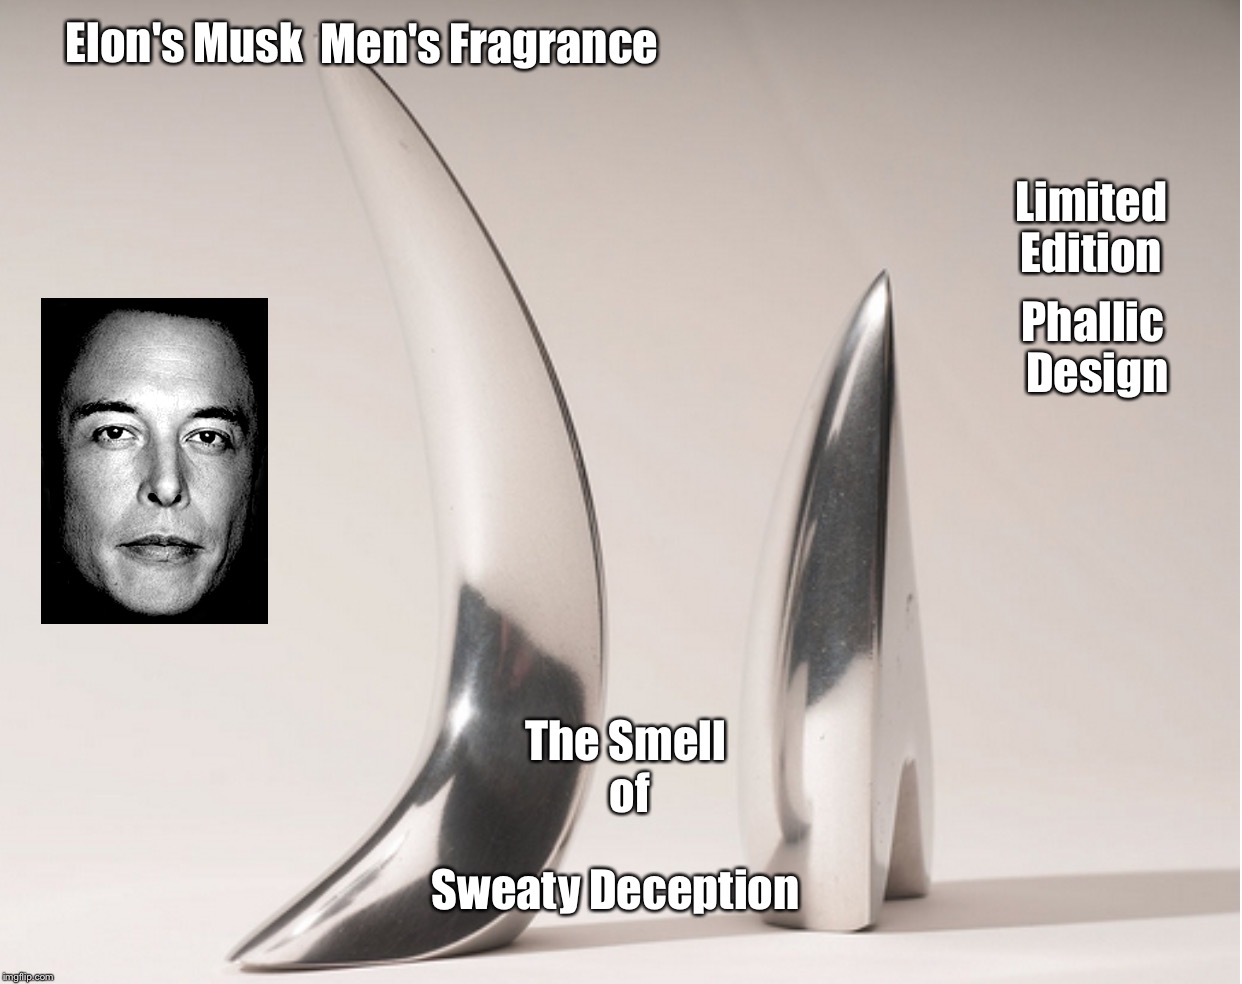 Elon's Musk Men's Fragrance  | Elon's Musk Men's Fragrance The Smell of Sweaty Deception Limited Edition Phallic Design | image tagged in memes,elon musk | made w/ Imgflip meme maker